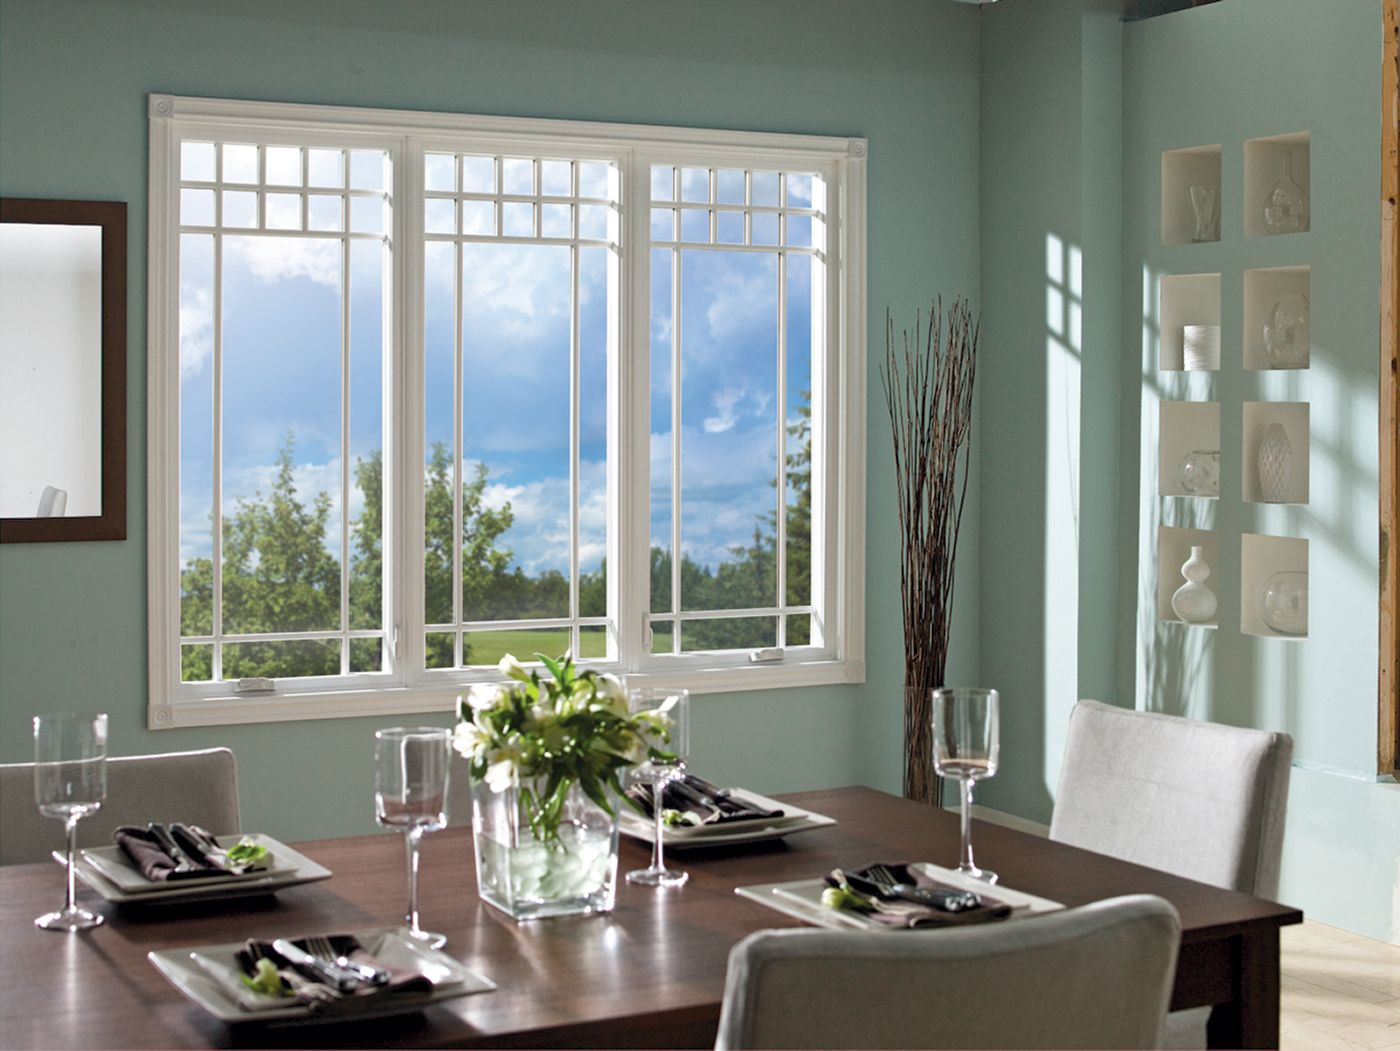 house windows design image 004 exterior paint color home - Home Windows Design